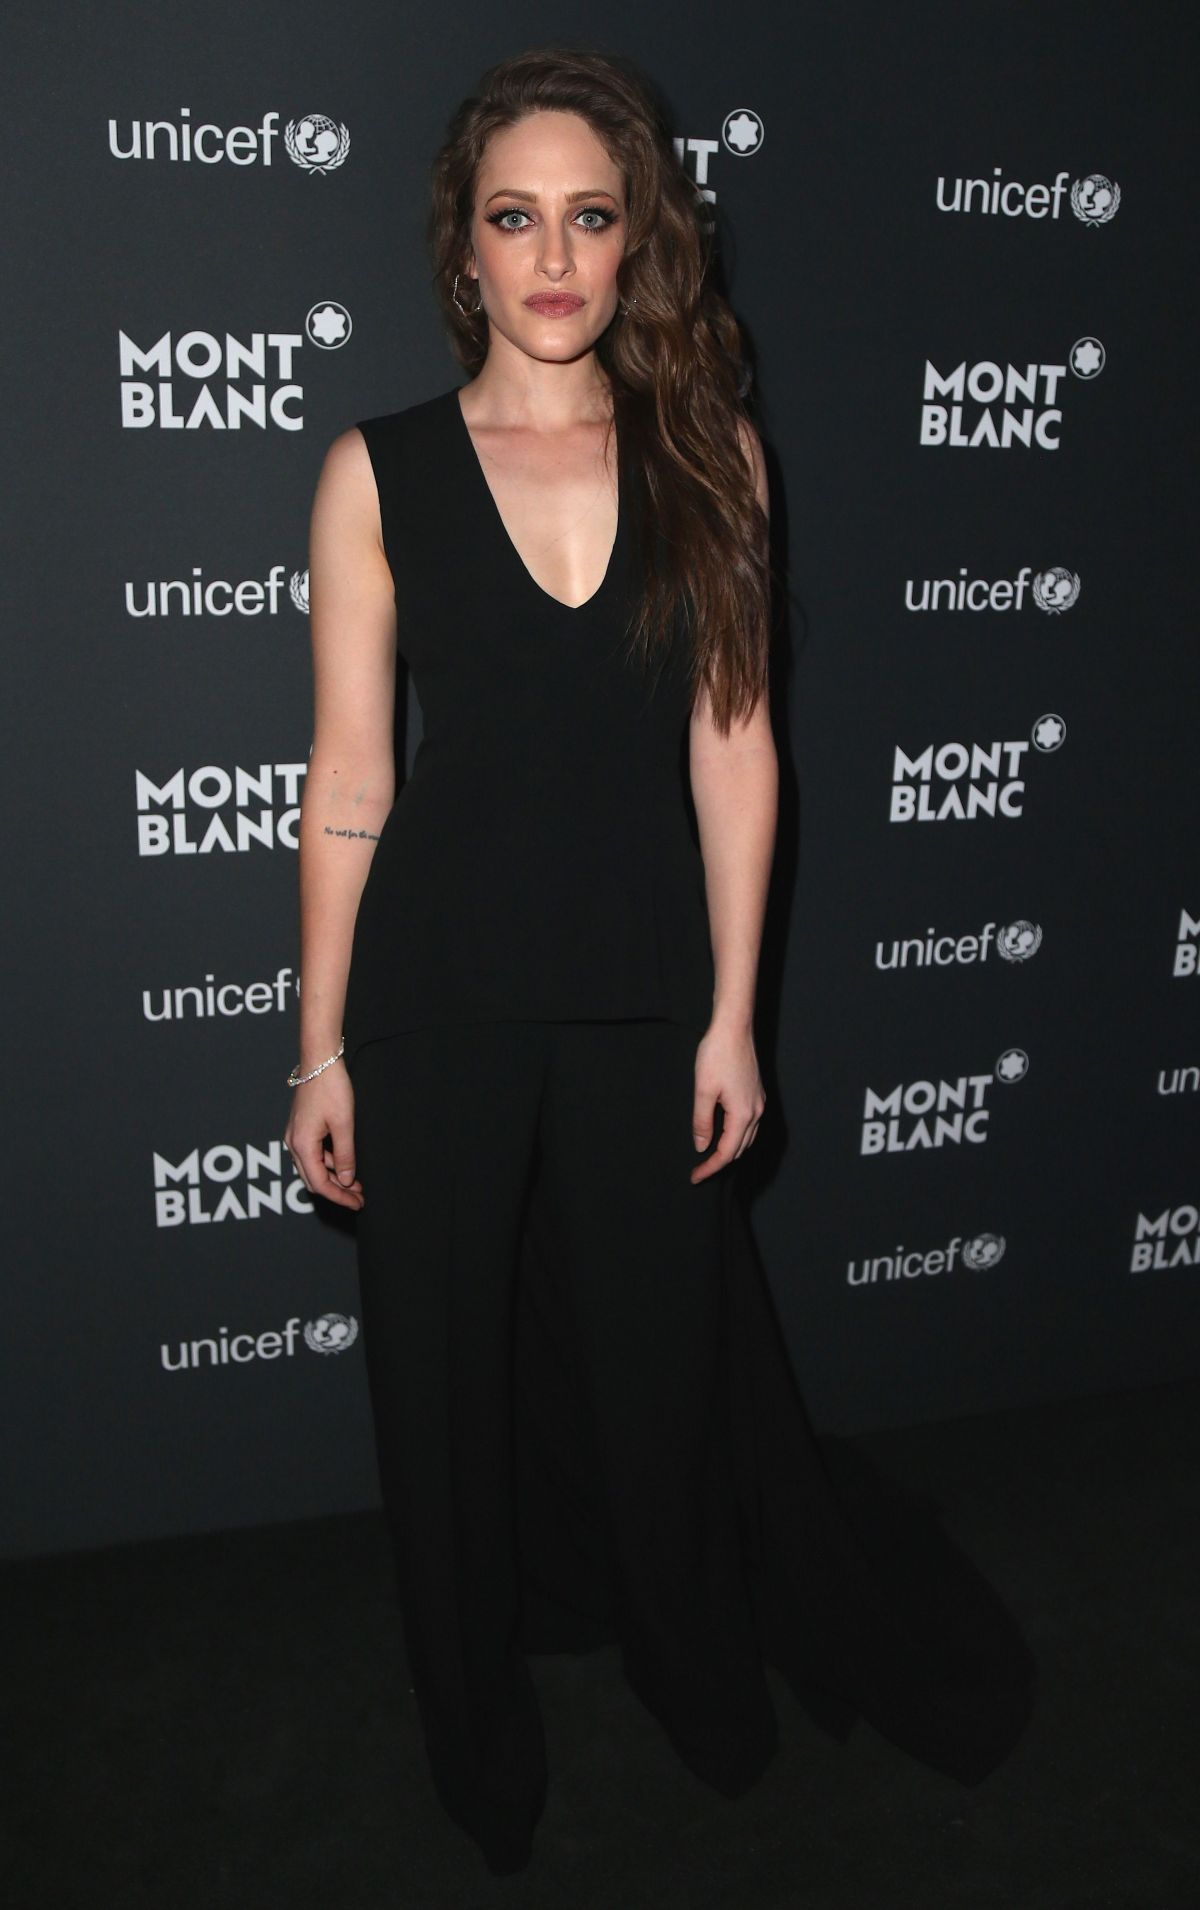 CARLY CHAIKIN at Montblanc for Unicef Collection Launch in New York 04/03/2017